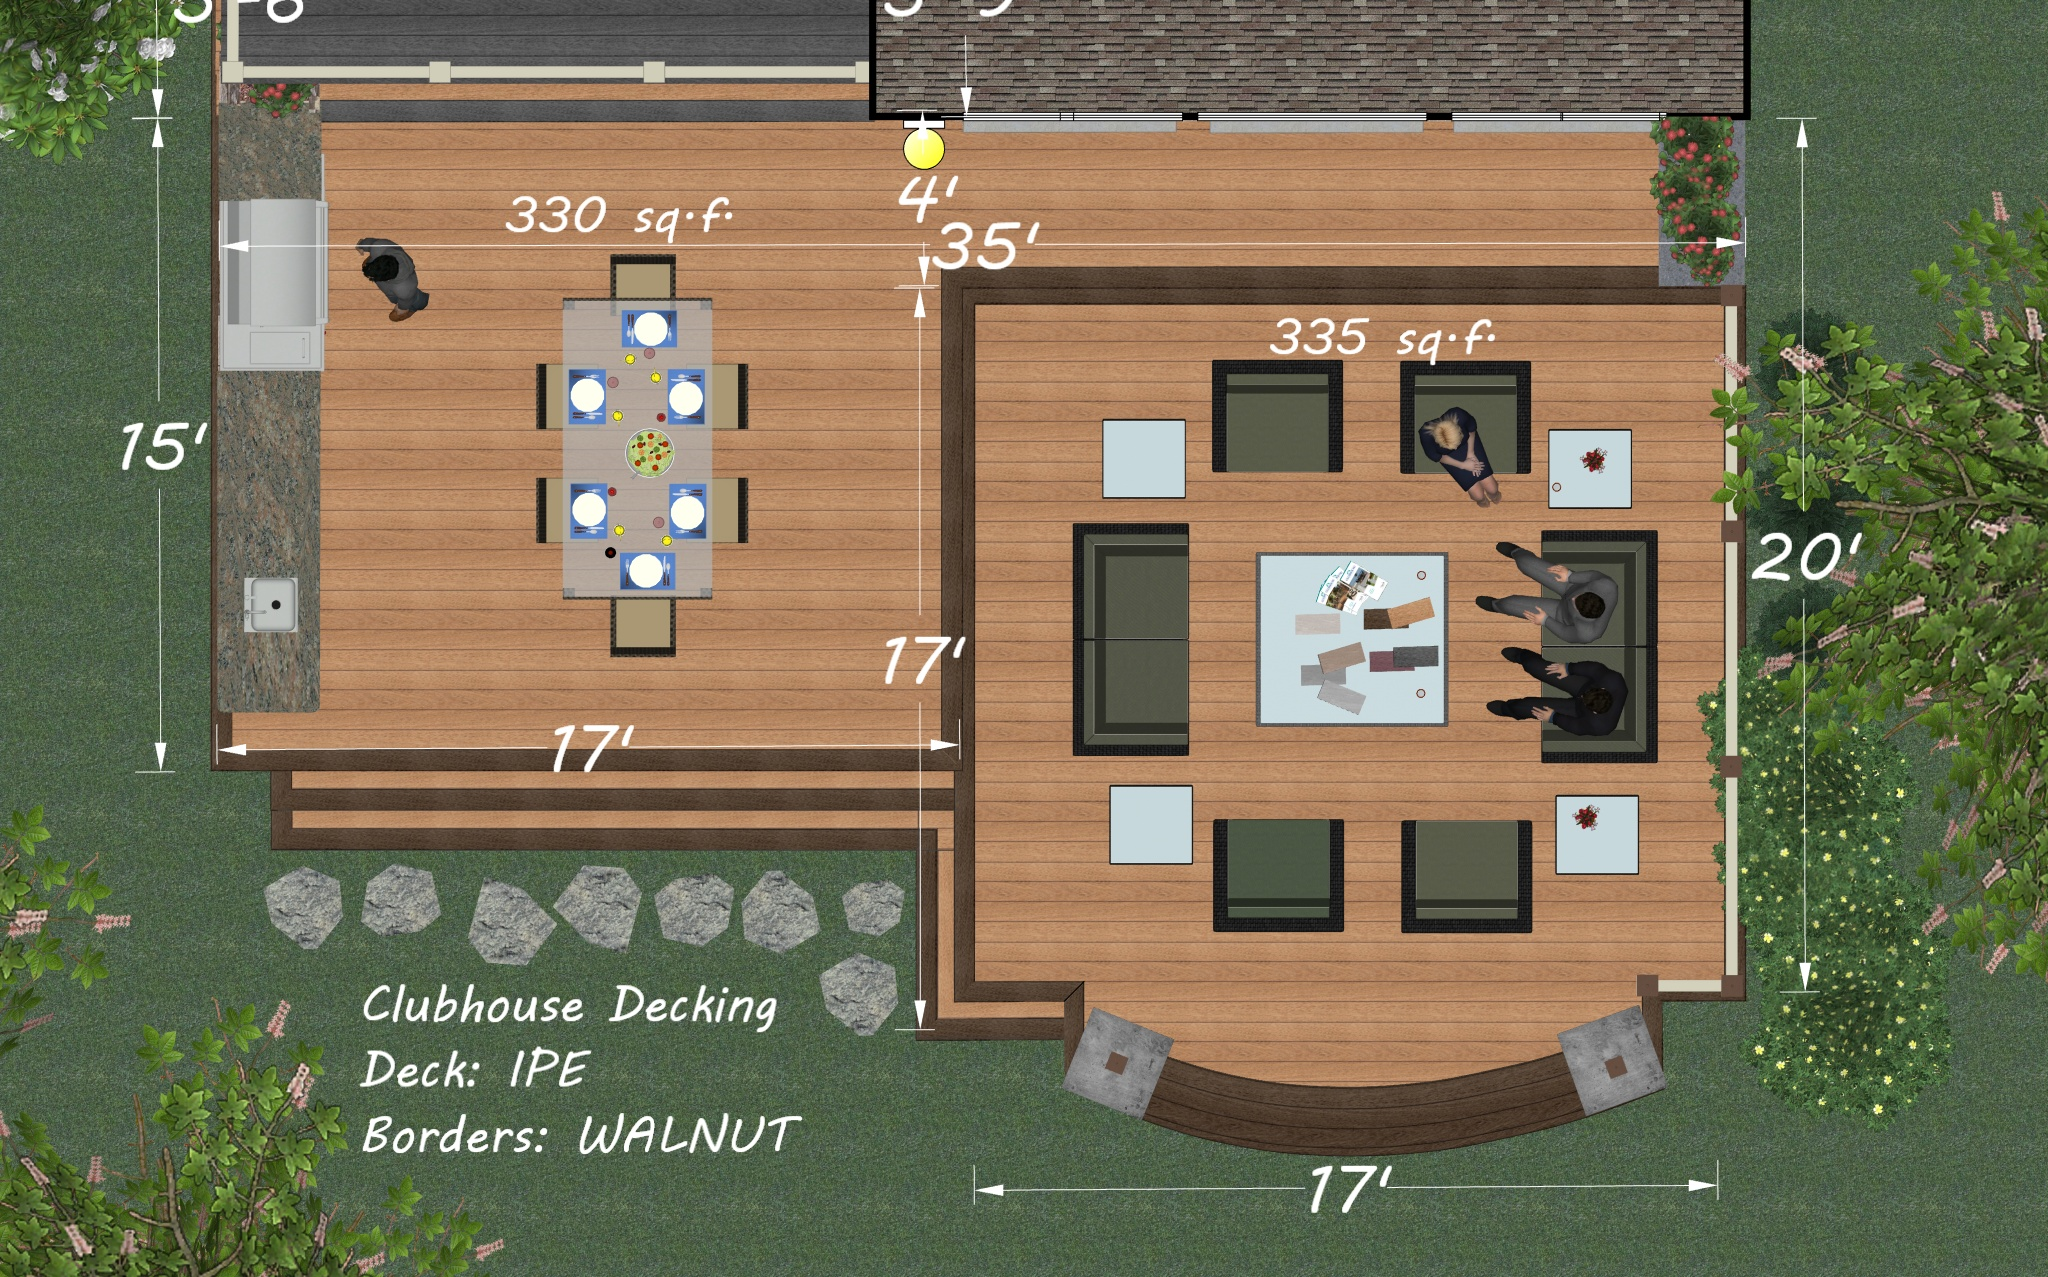 Clubhouse deck top view.jpg